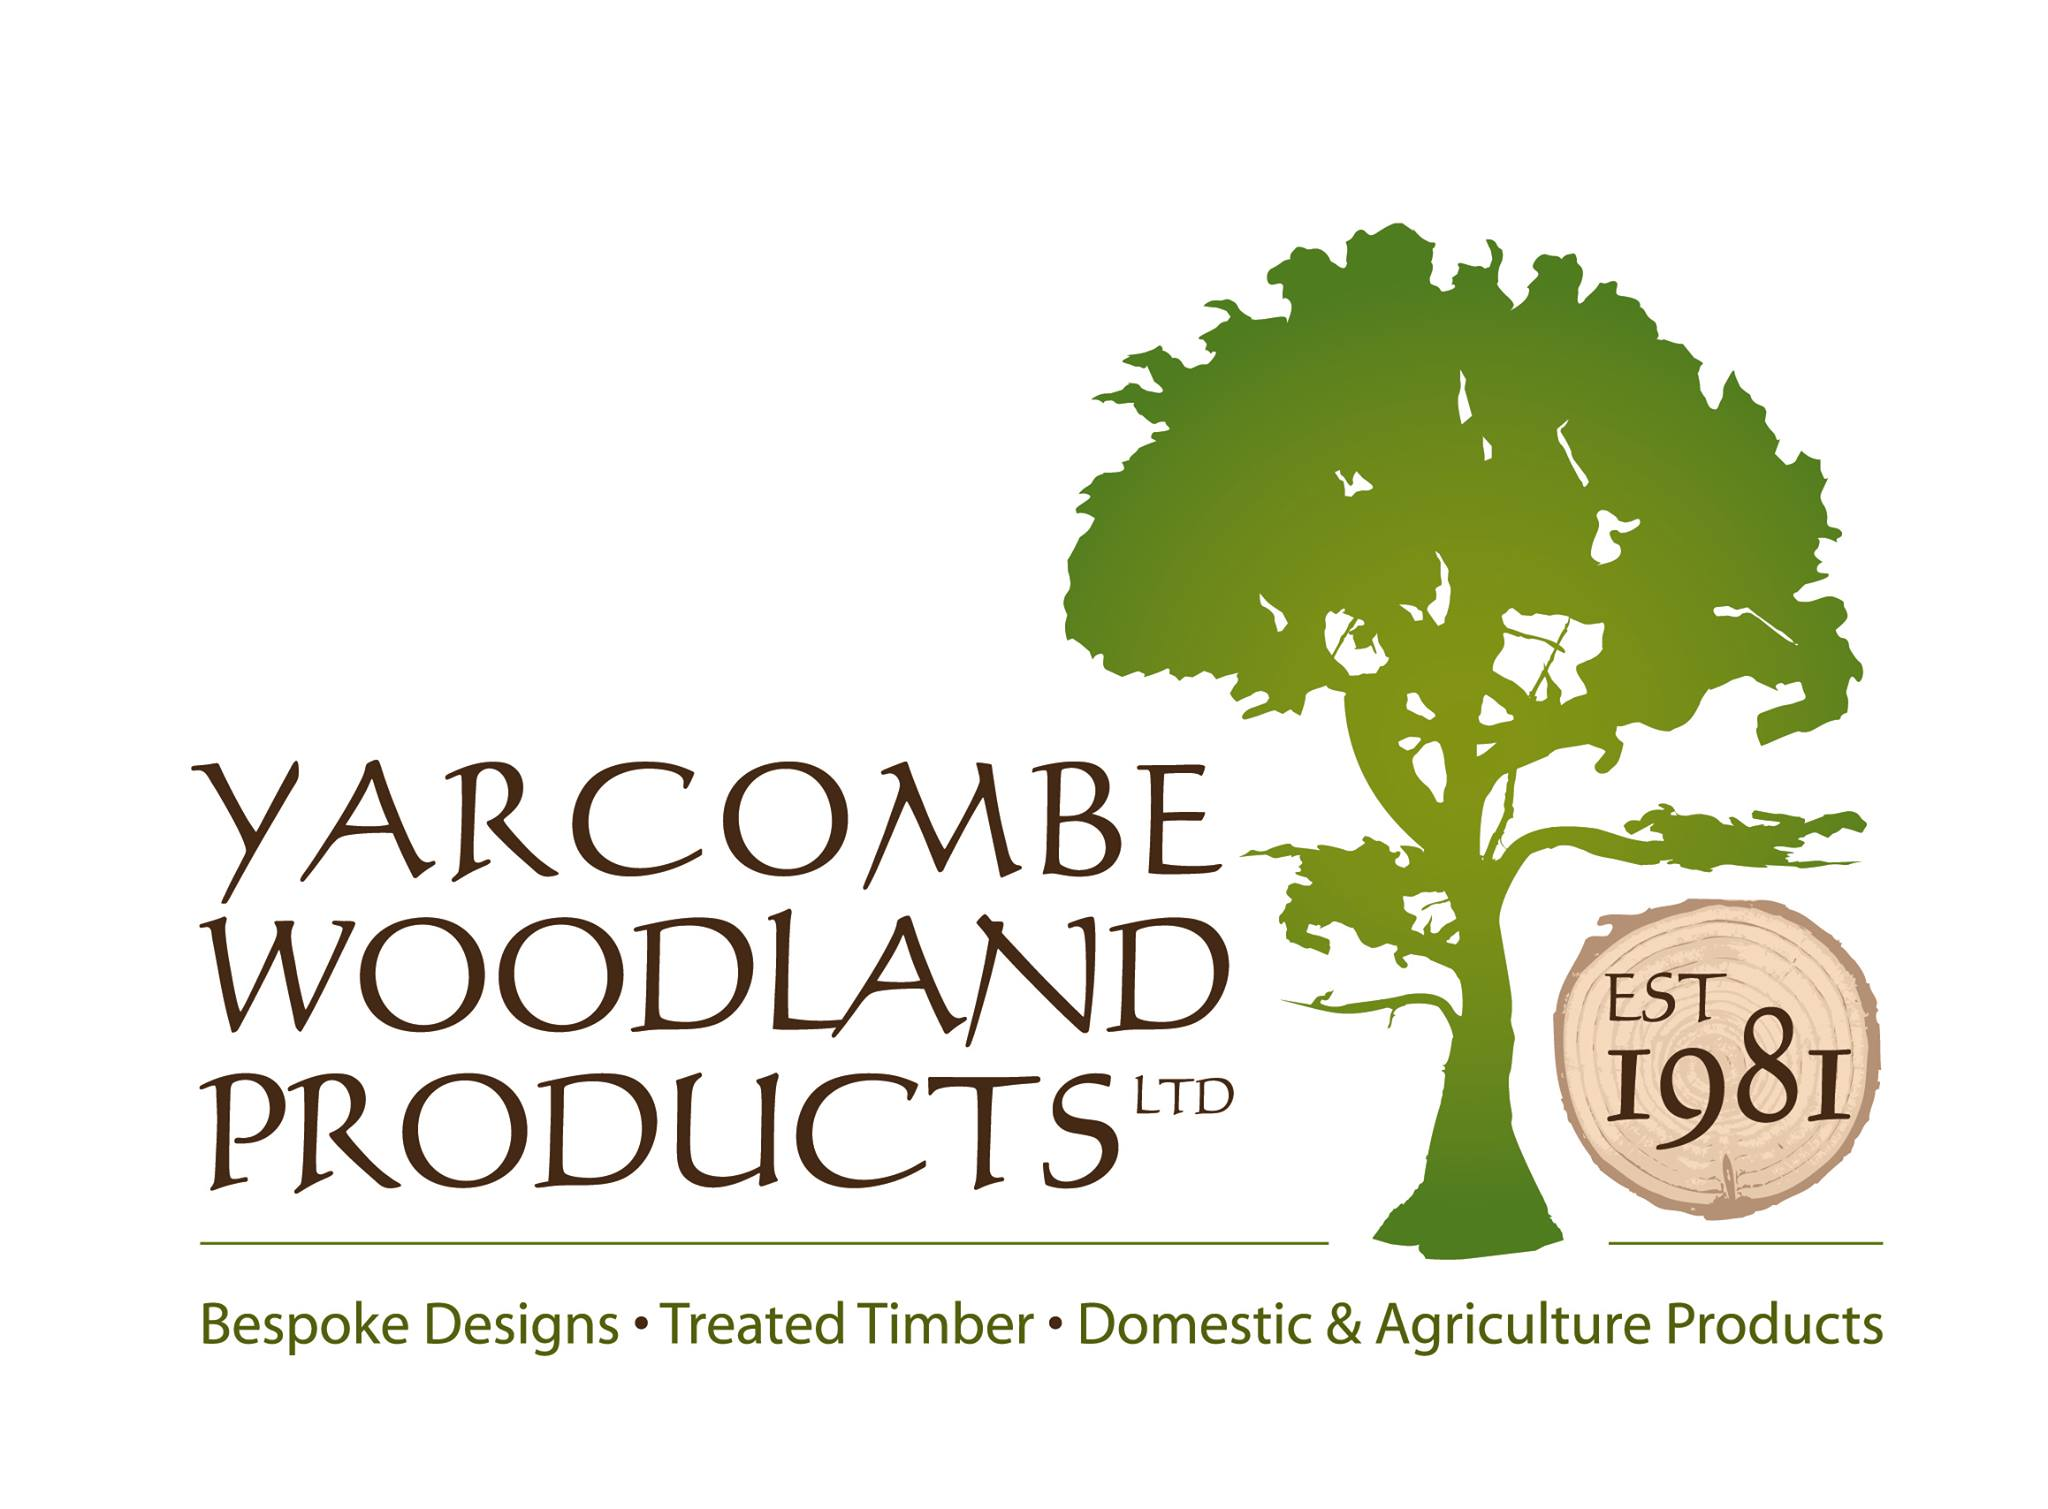 Yarcombe Woodland Products